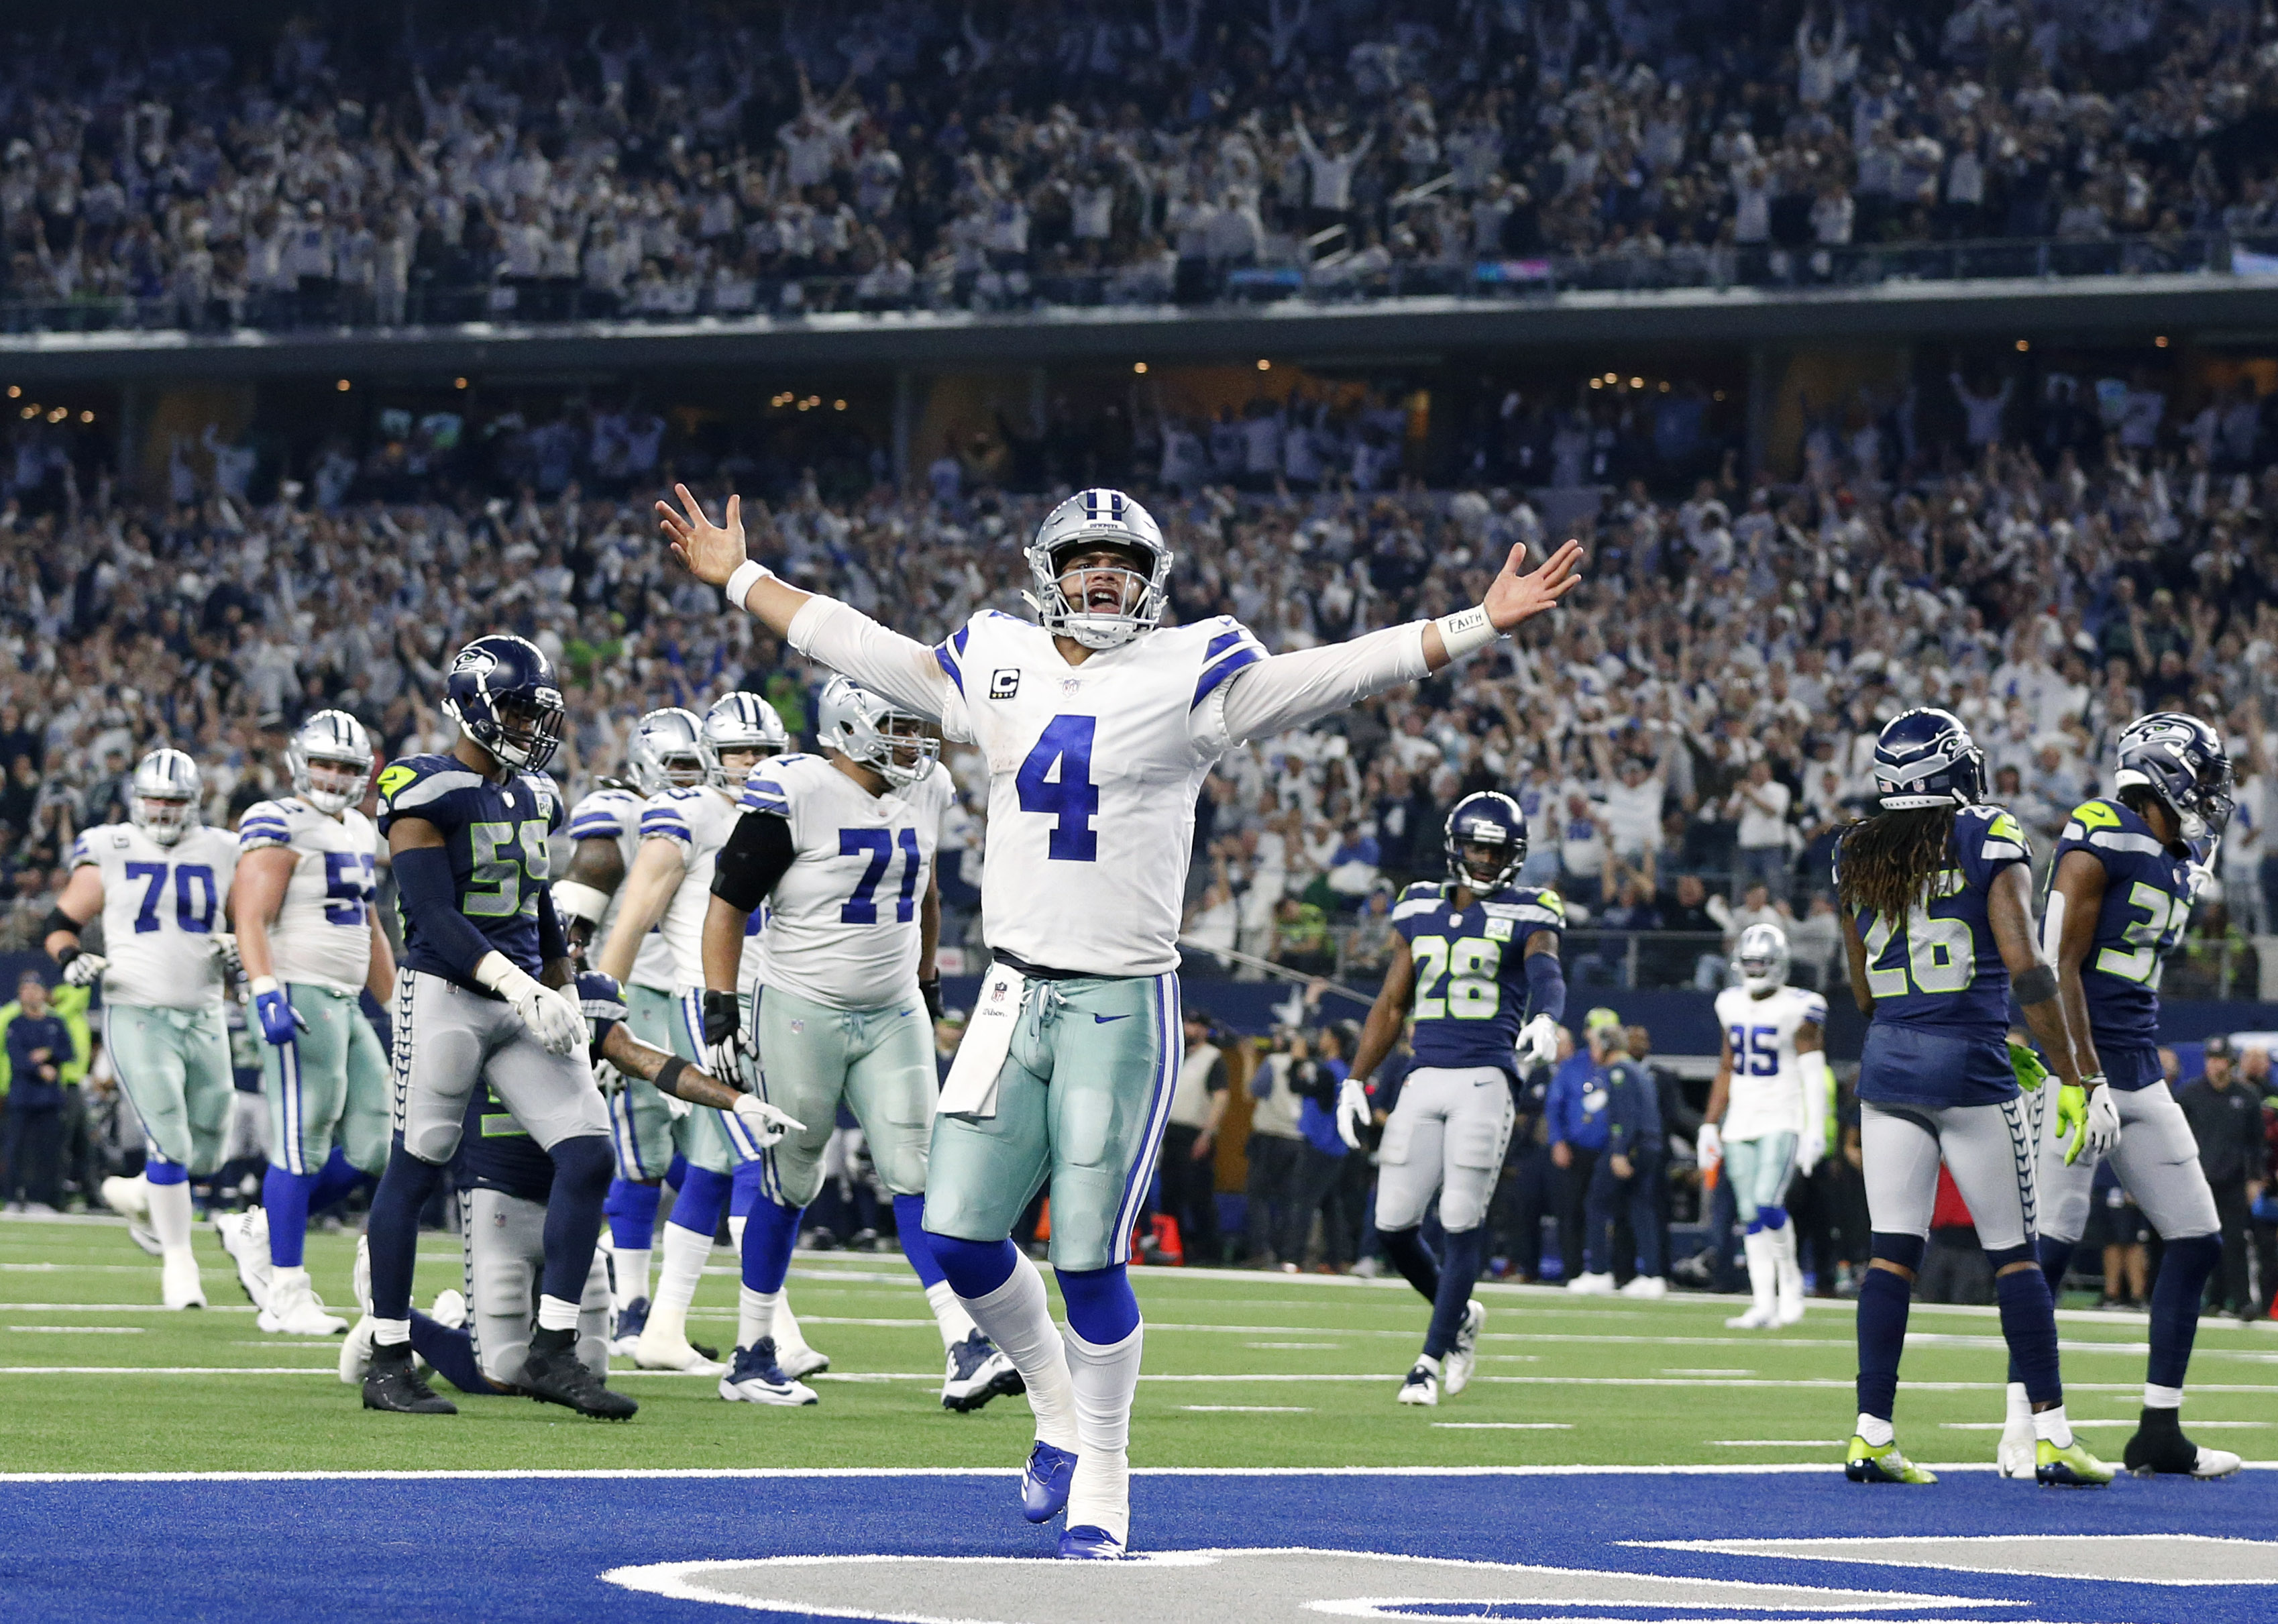 Fortunes change quickly in NFL, as Dak Prescott and Mitch Trubisky have  shown. Cowboys now need their QB to bounce back